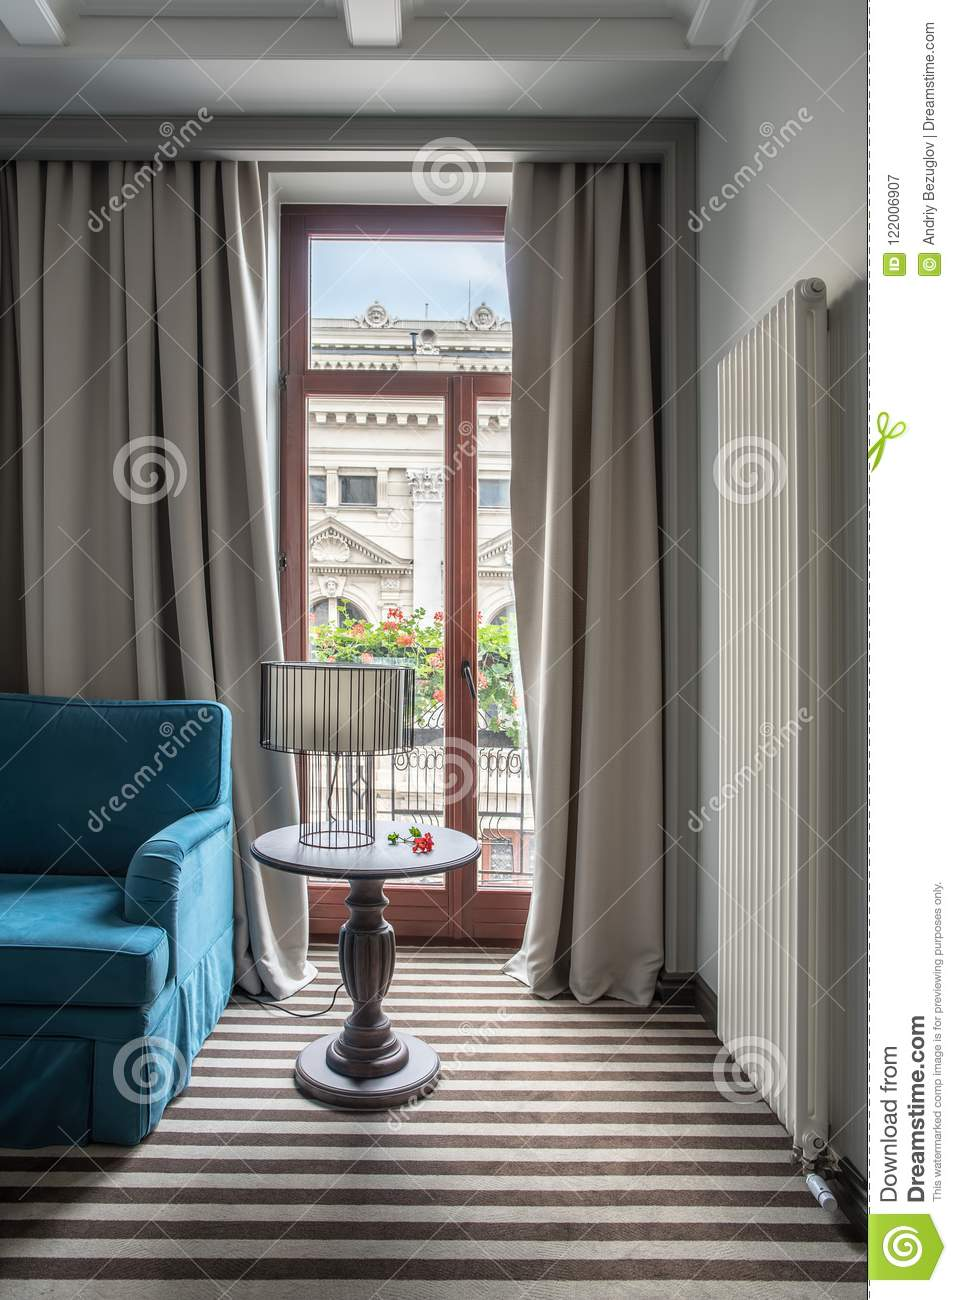 Hotel Room Lights: Stylish Hotel Room Stock Image. Image Of Indoor, Lampshade